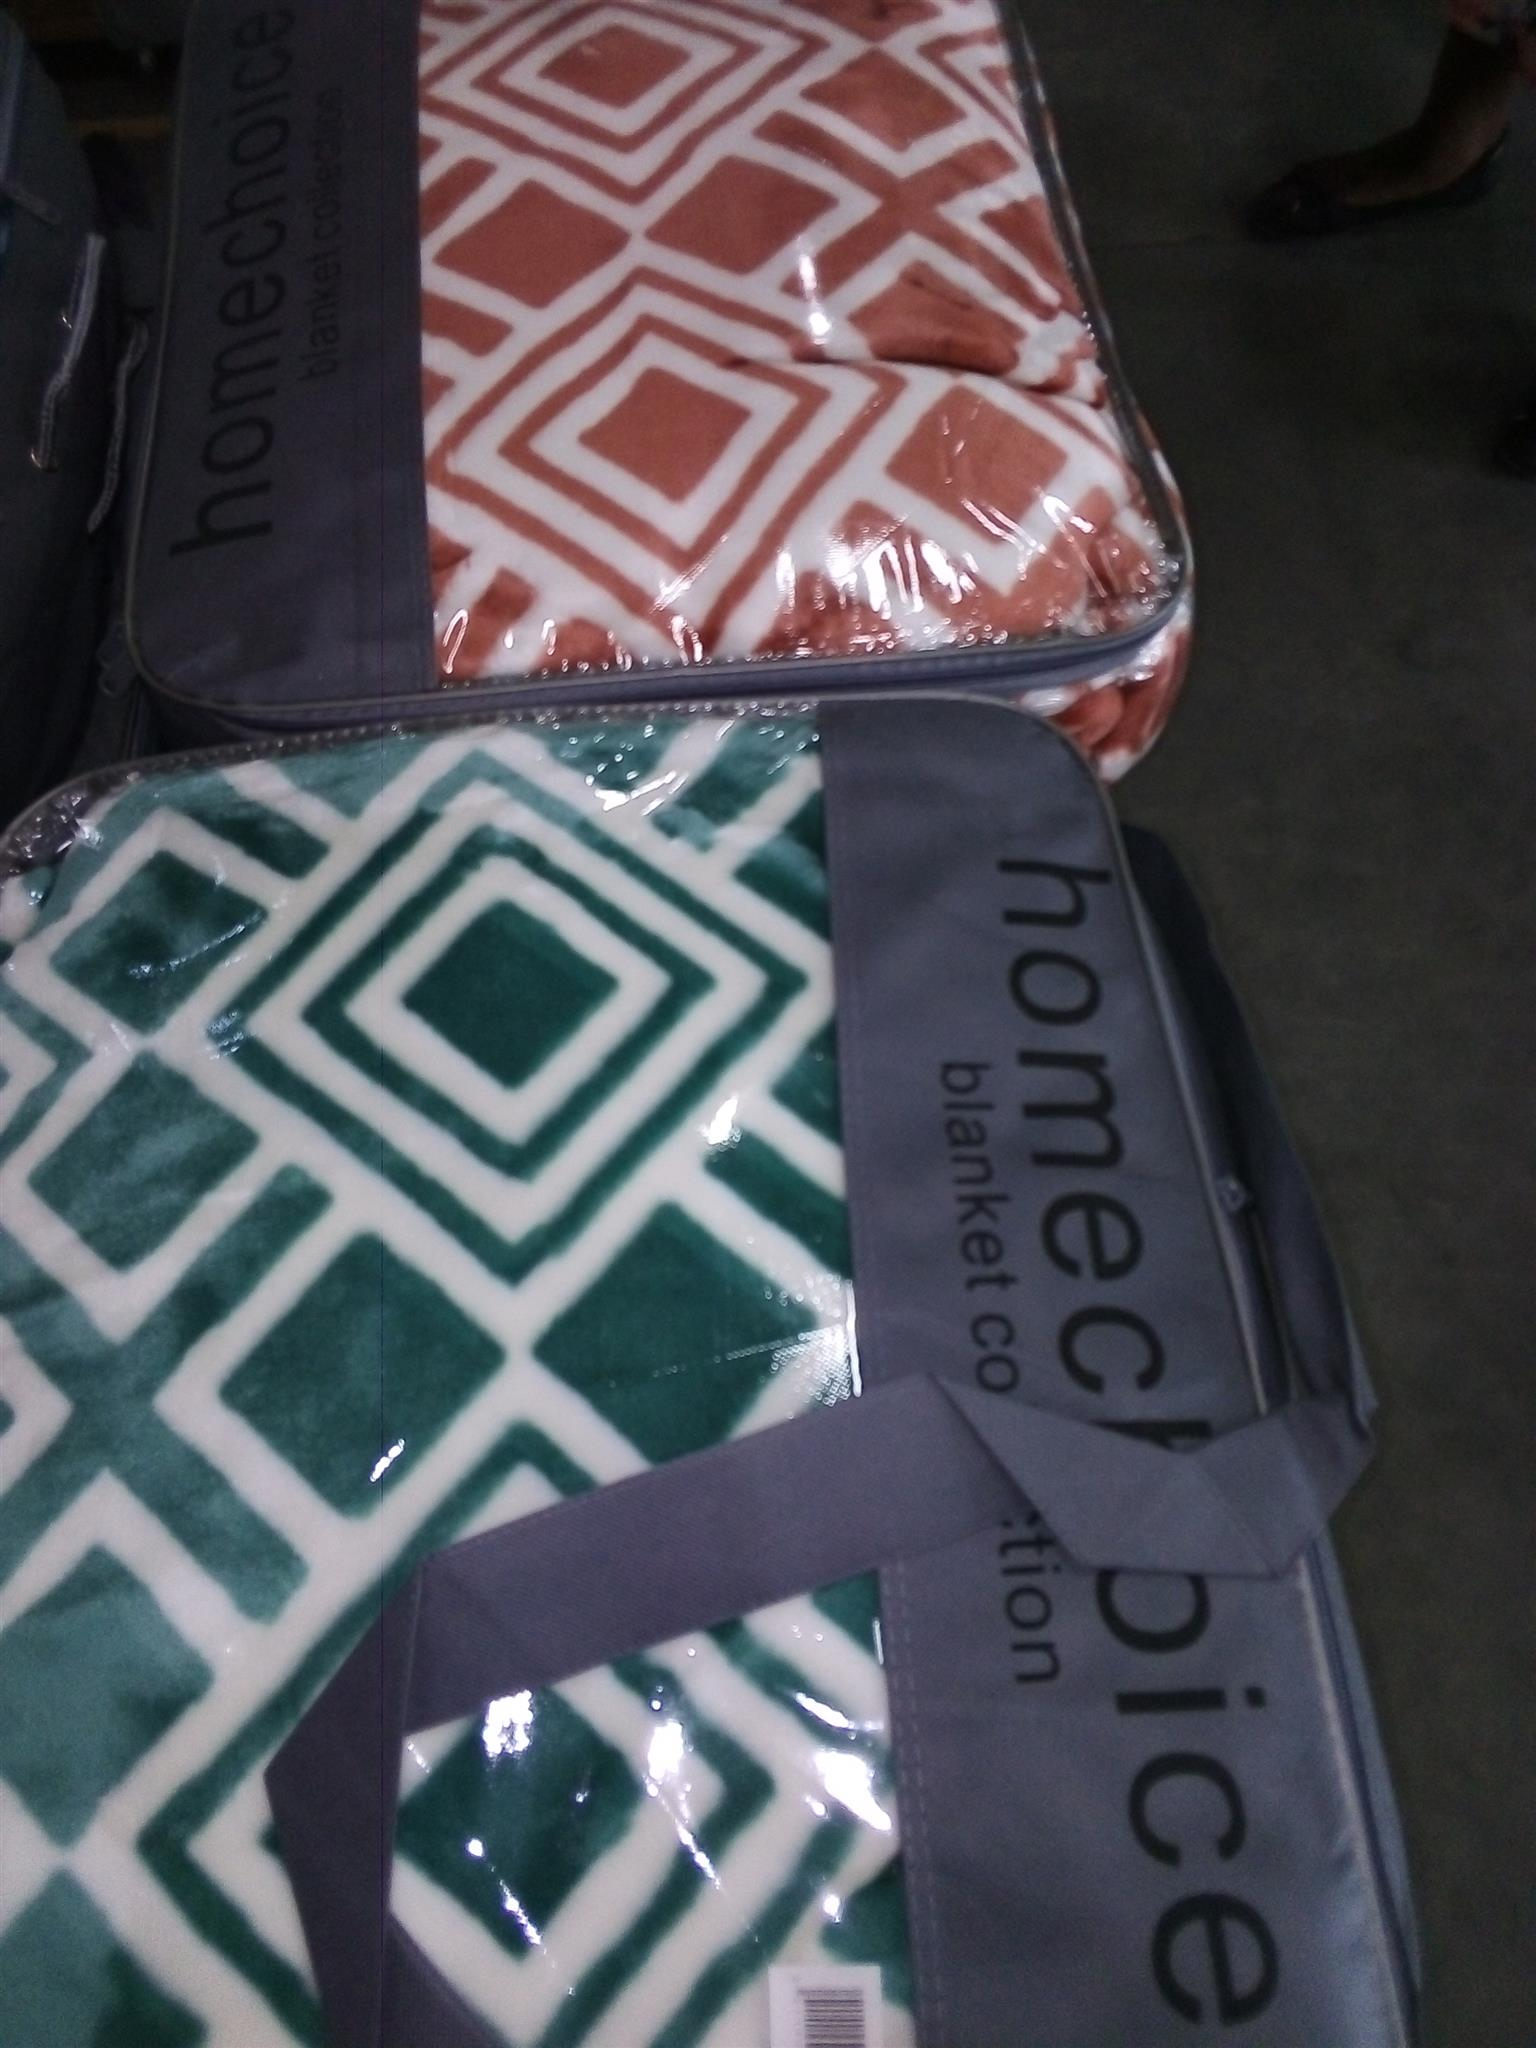 Iam selling variety of bedding Homechoice